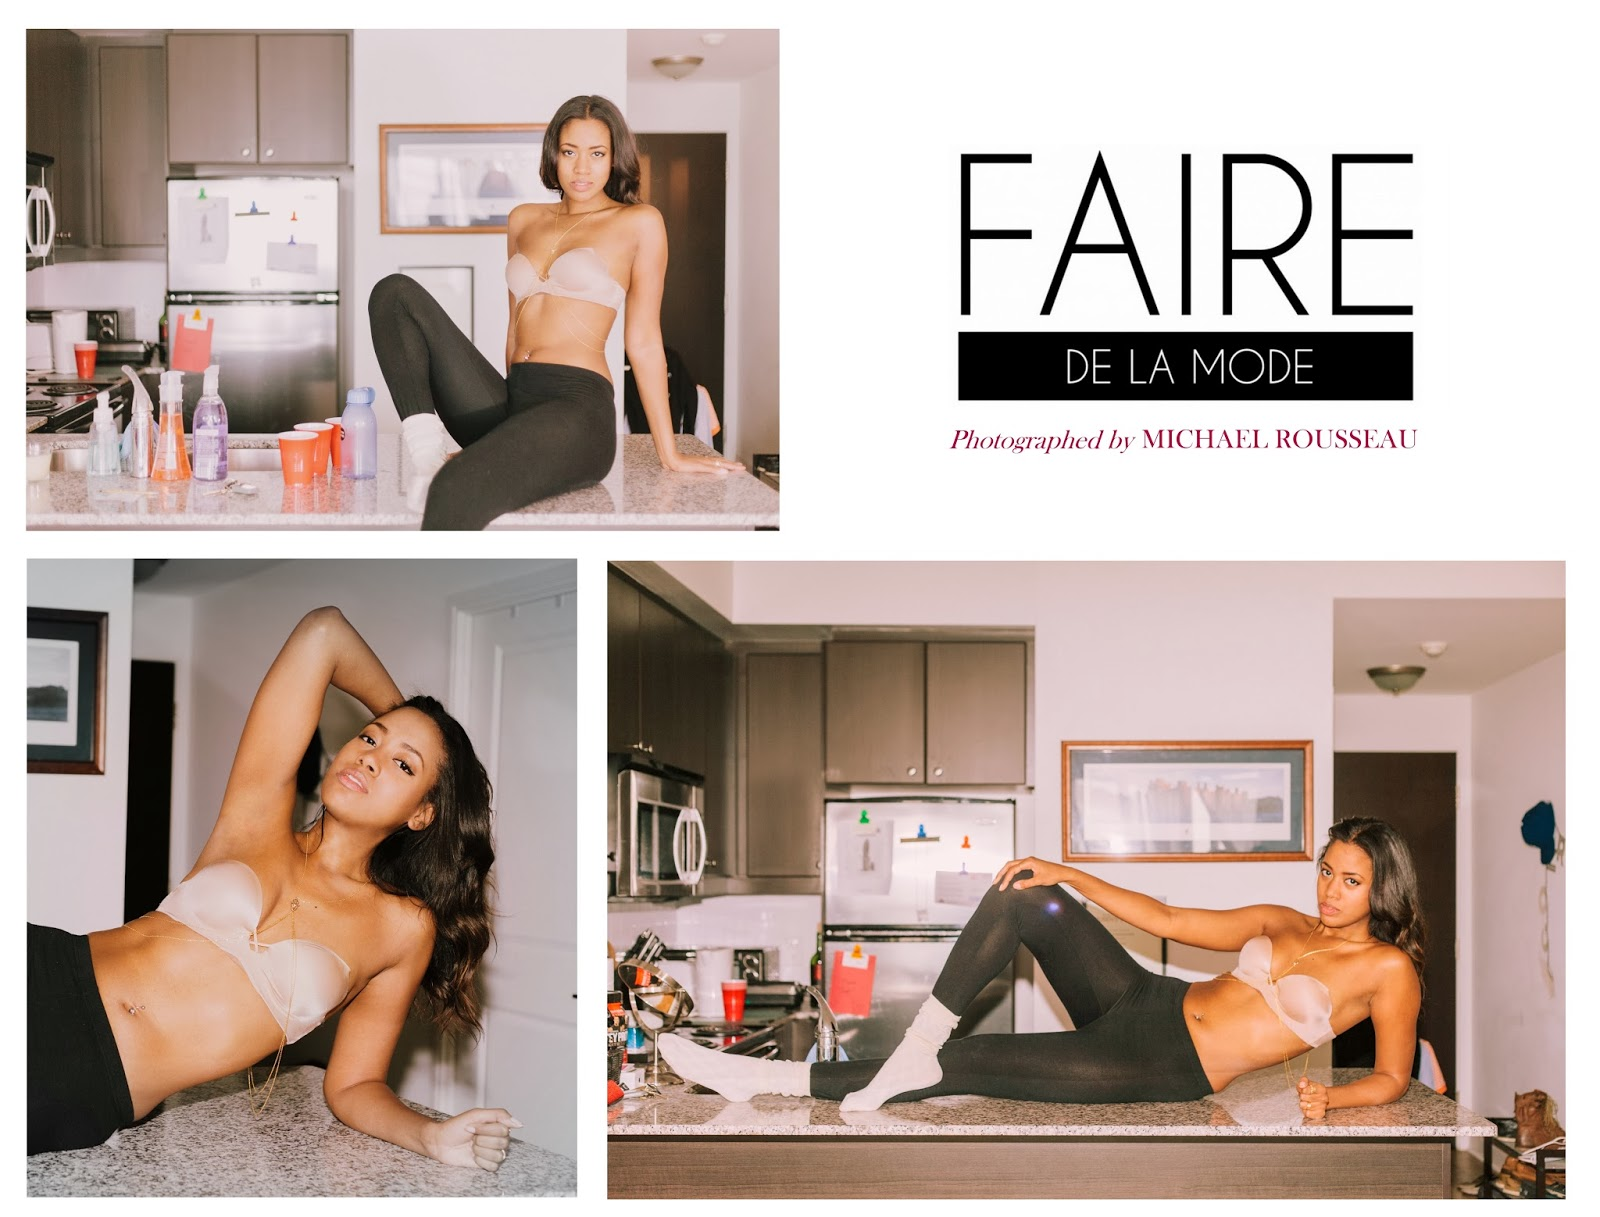 http://www.fairedelamode.com/campaign.html